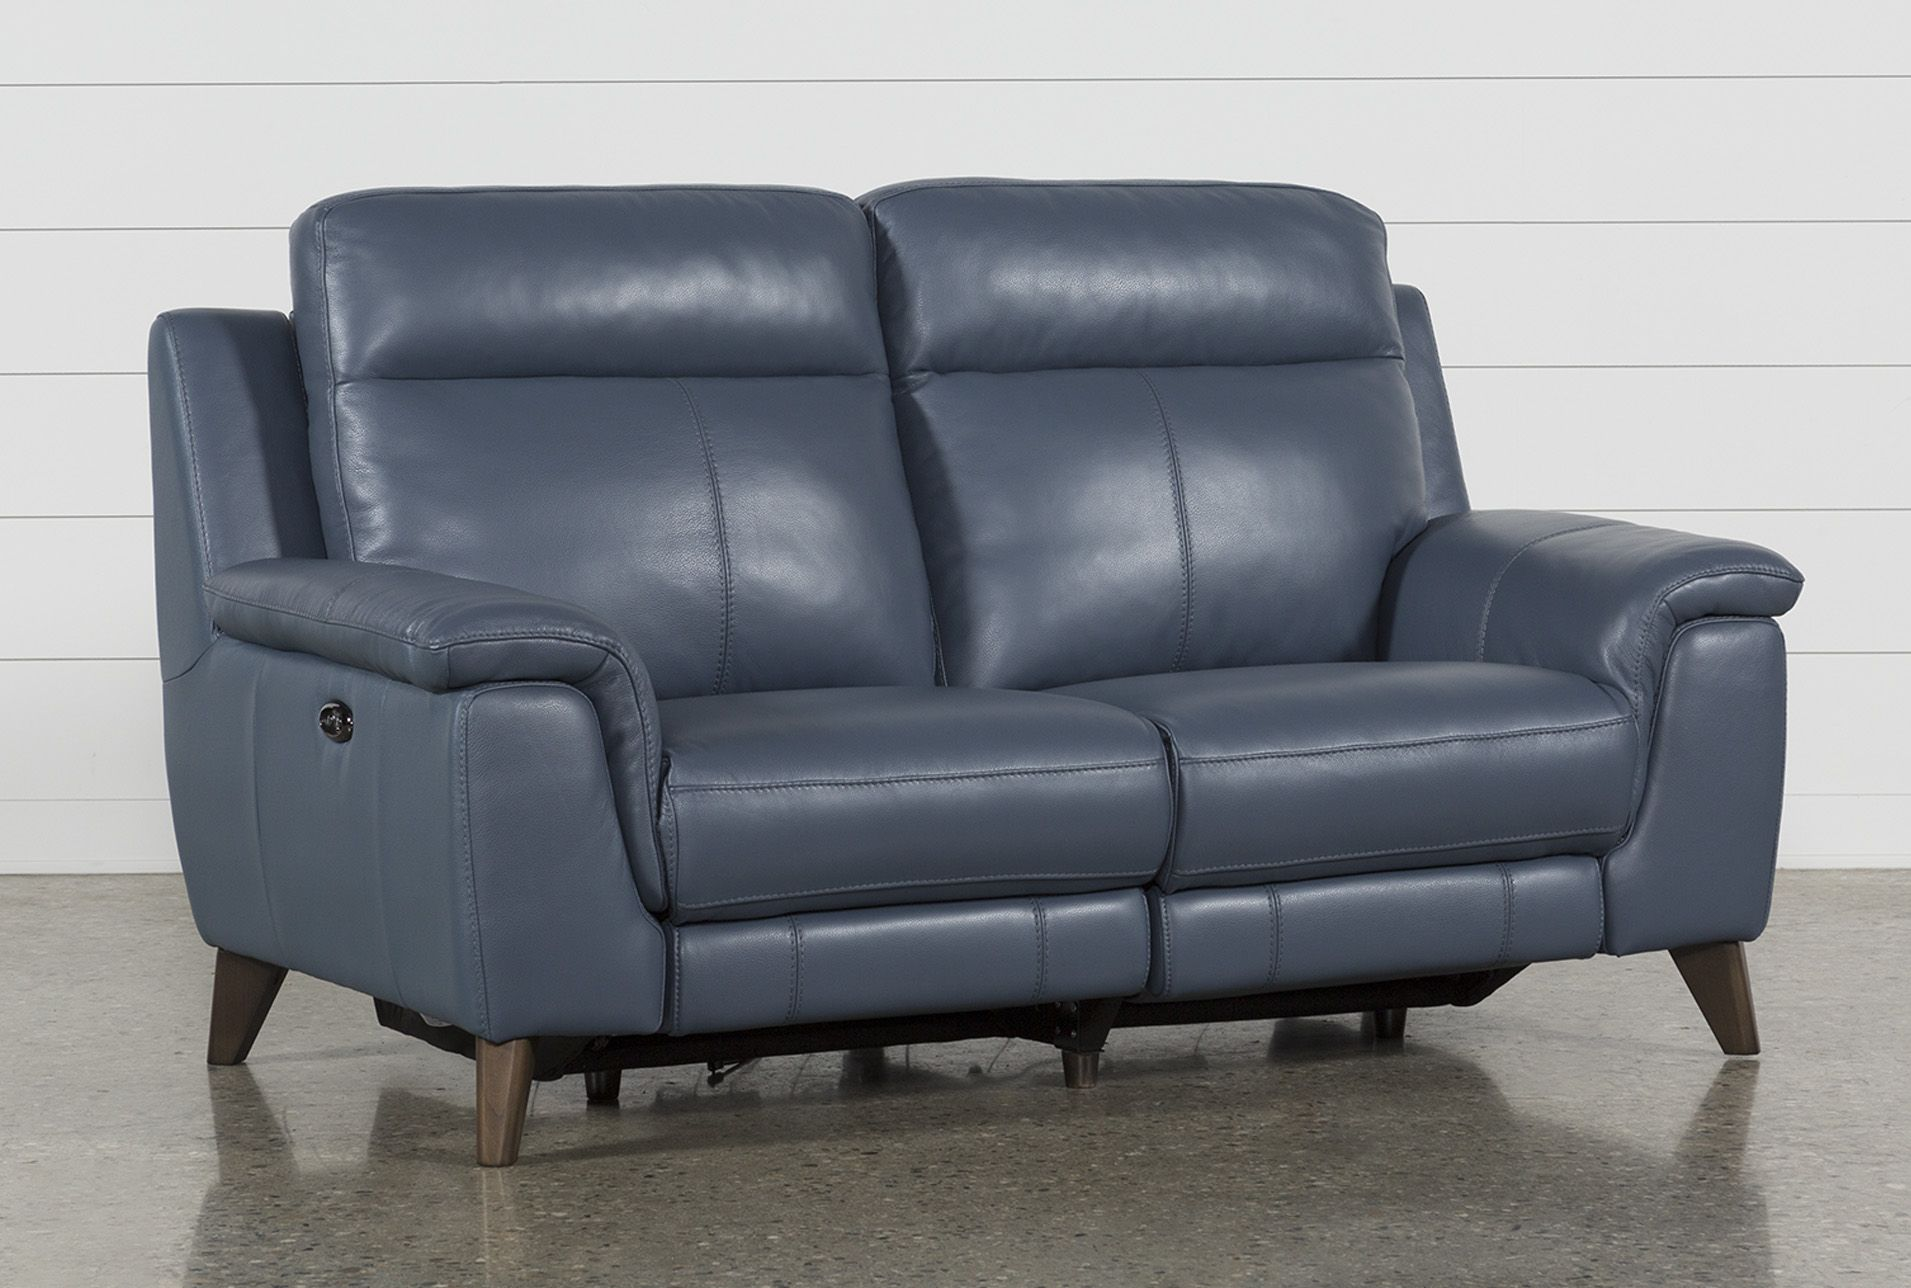 Brilliant Dual Power Reclining Loveseat With Usb Port Moana Blue Pdpeps Interior Chair Design Pdpepsorg